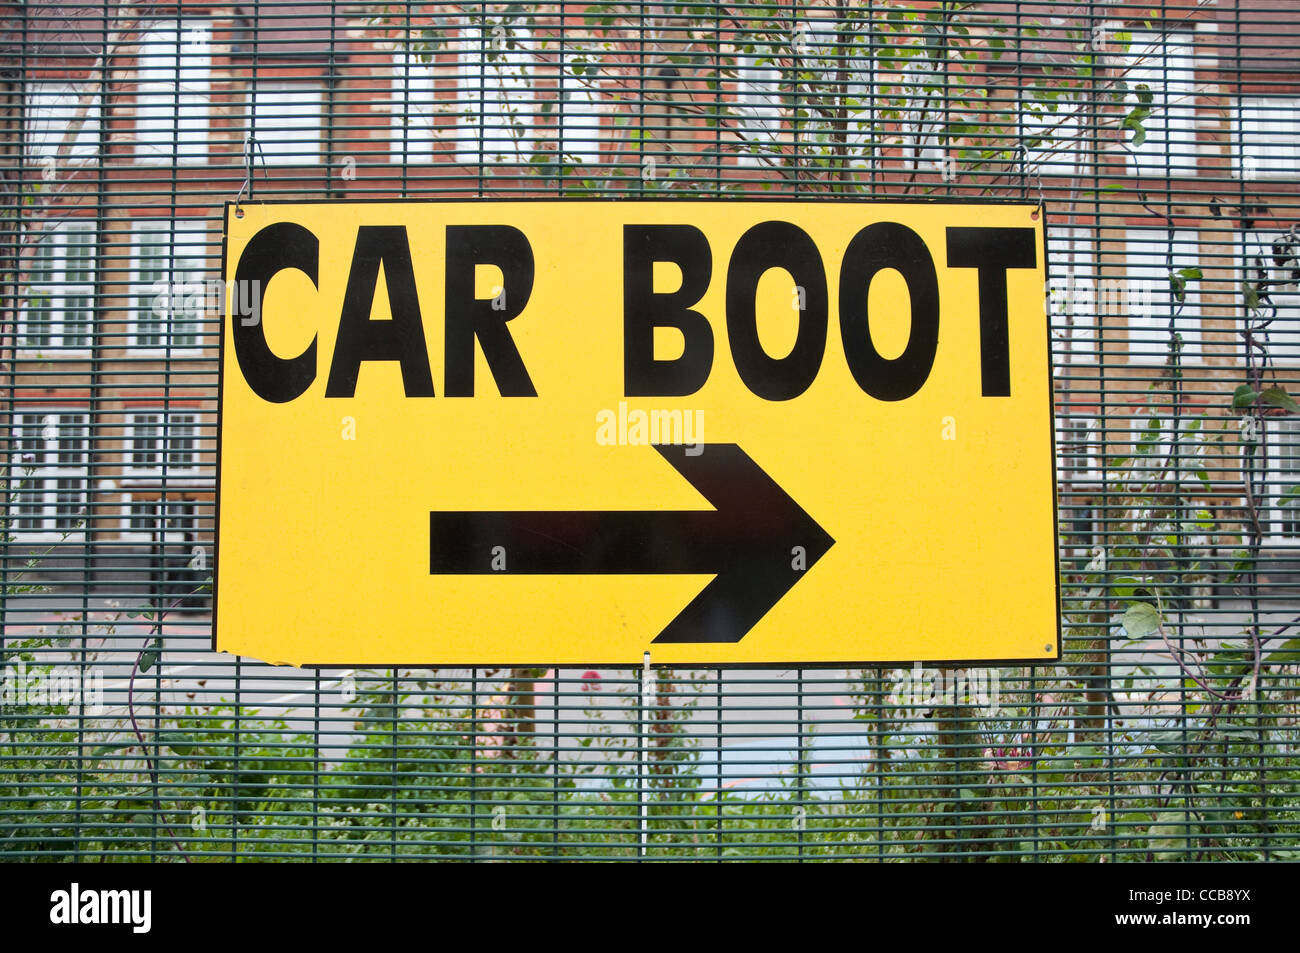 A yellow sign pointing to the car boot sale at princess may primary school